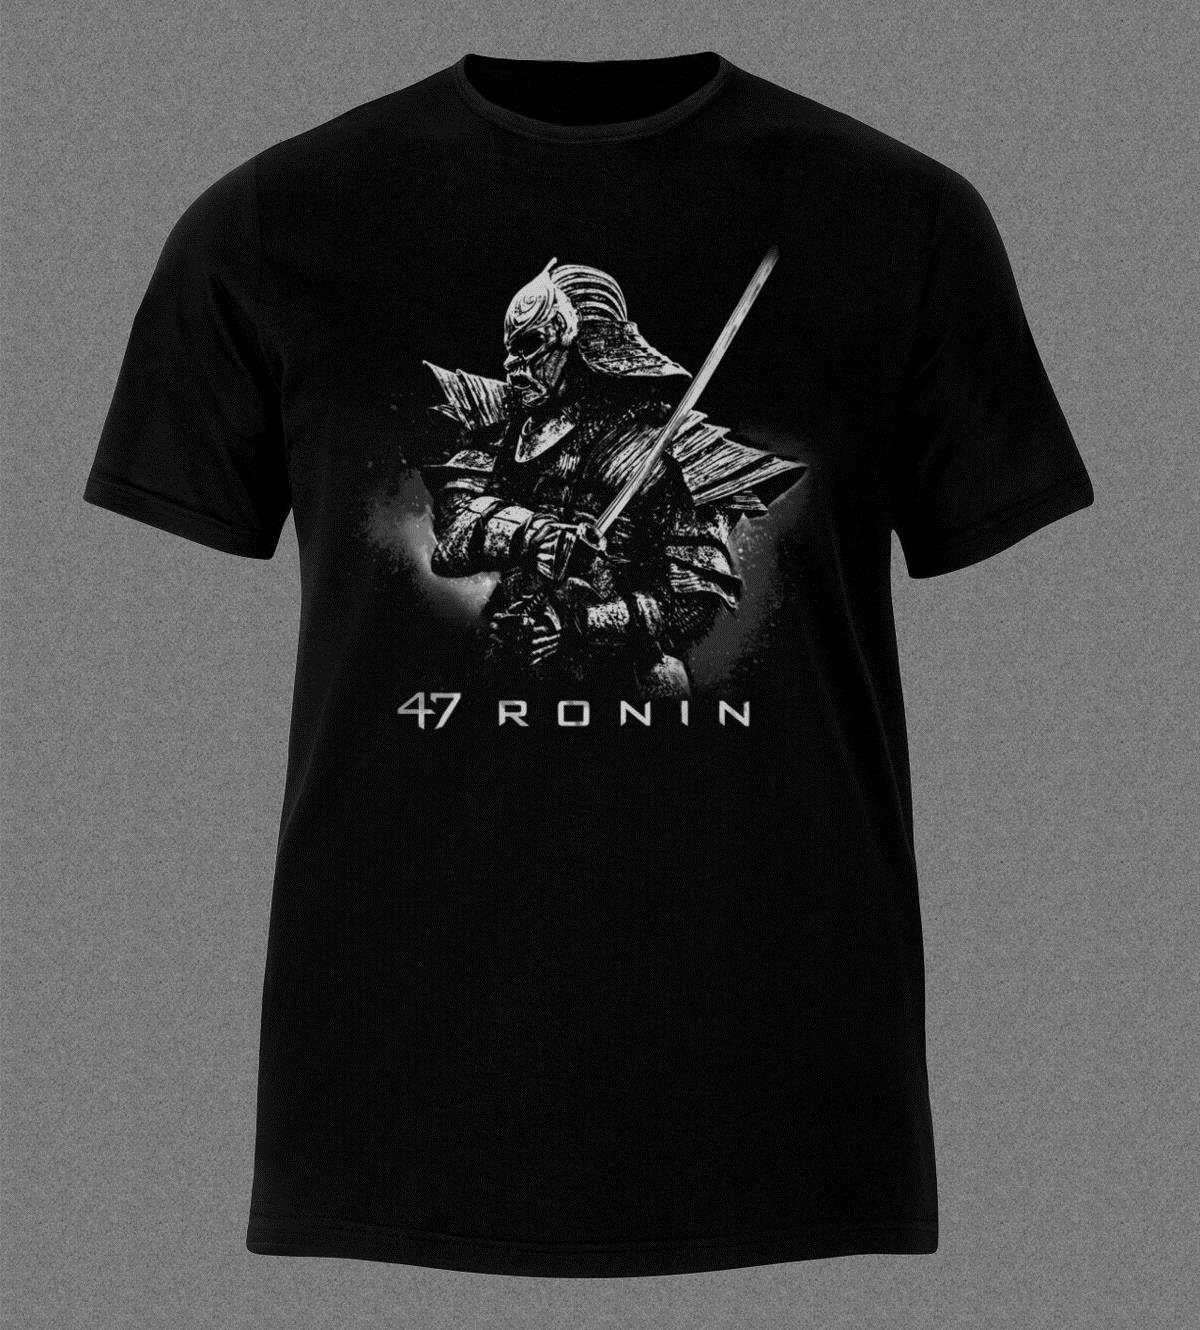 629e898d76d0 47 RONIN KEANU REEVES SAMURAI JAPAN CATANA FILM MOVIE T Shirt Men Clothing  Plus Size S M L Xl Xxl Designable T Shirts Buy Funny Shirts From  Amesion2505, ...